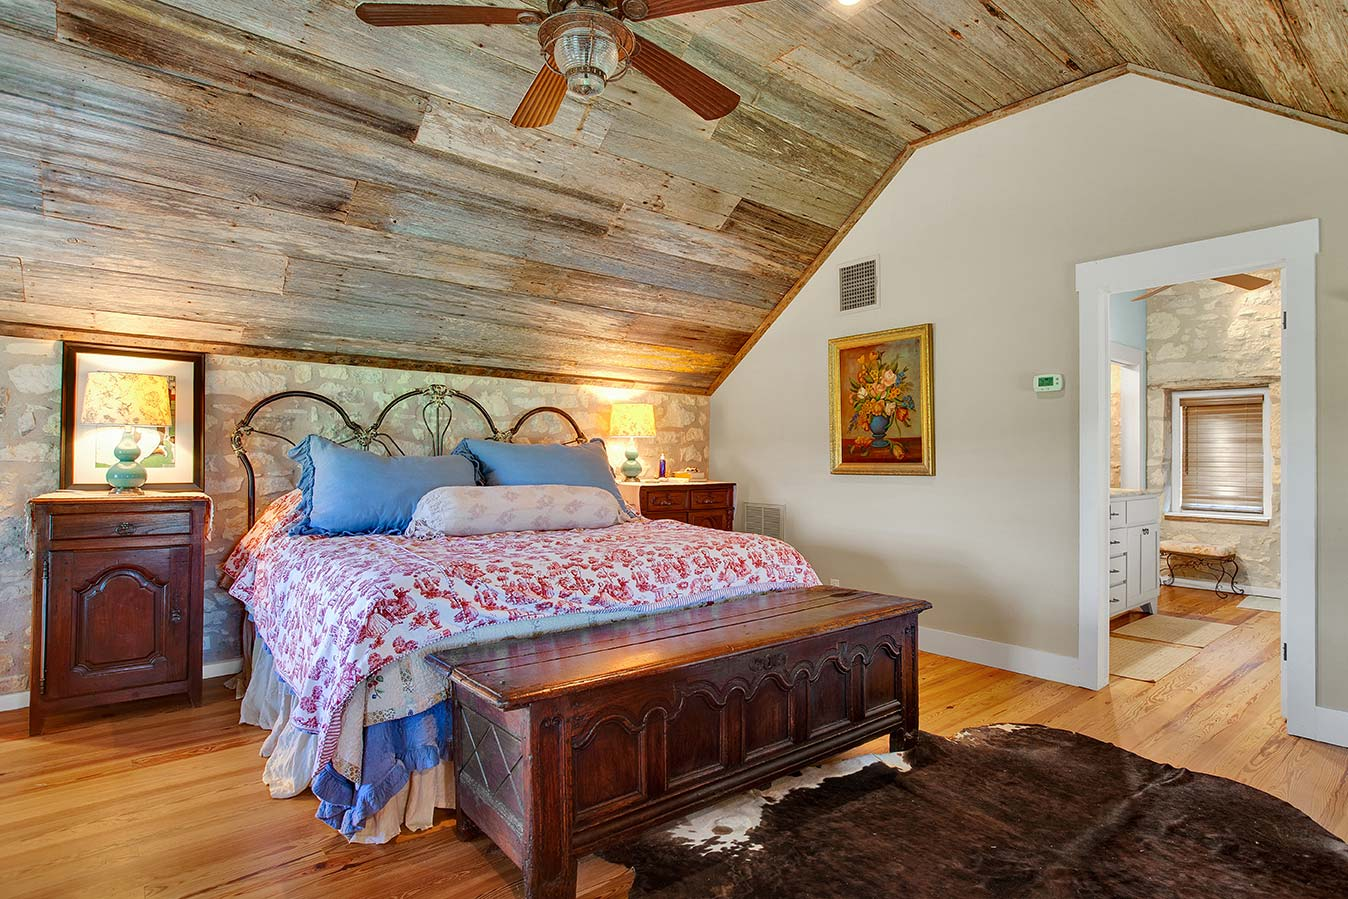 fredericksburg-realty-squaw-creek-ranch-real-estate-land-for-sale-home-house-historic-6.jpg